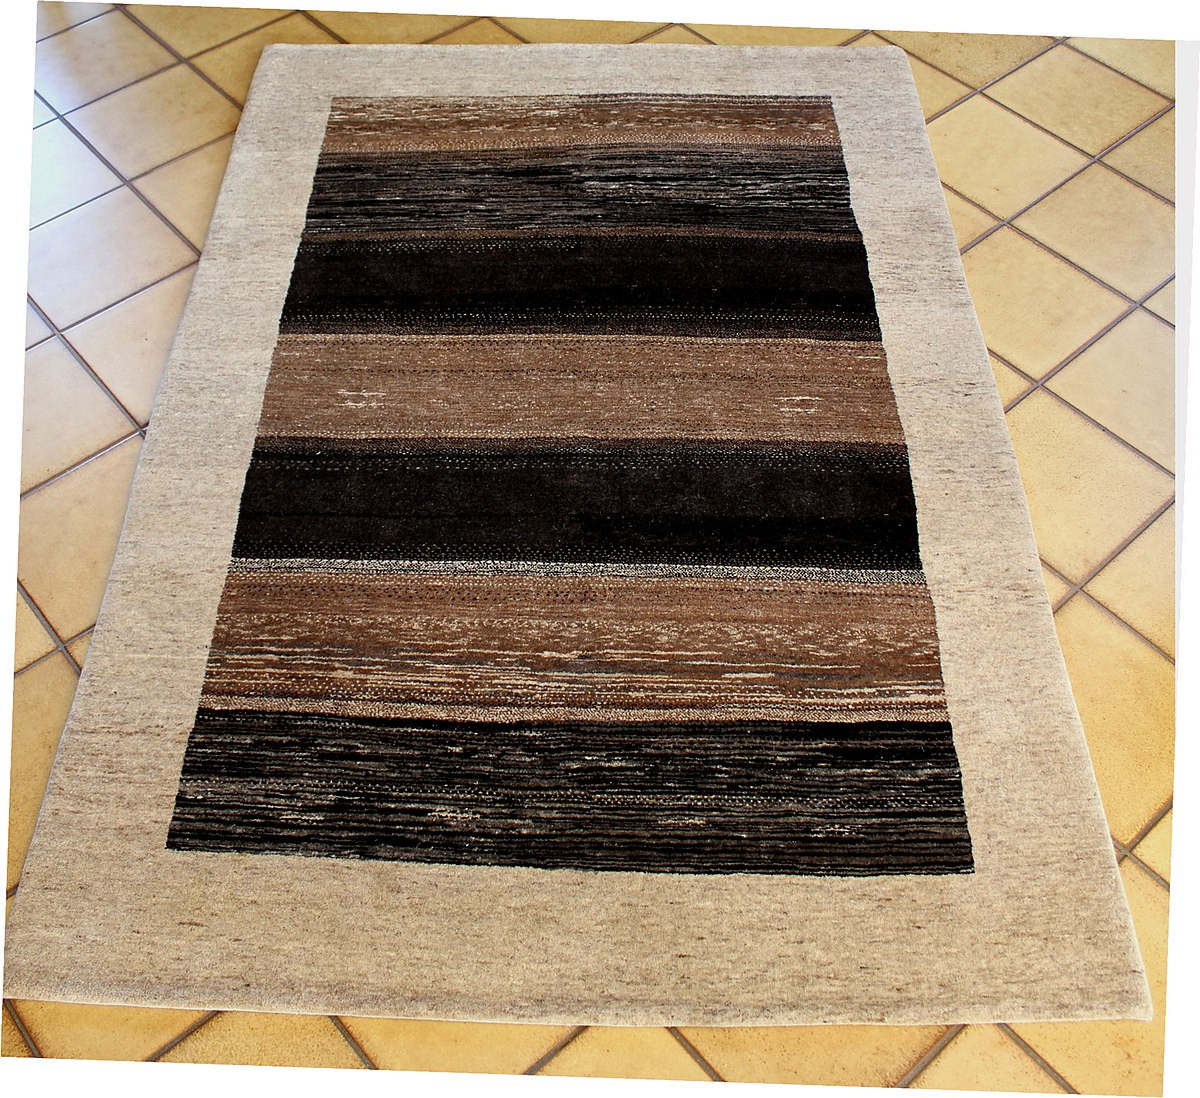 Carpet – Wikipedia For Most Current Blended Fabric Aladin European Wall Hangings (View 8 of 20)